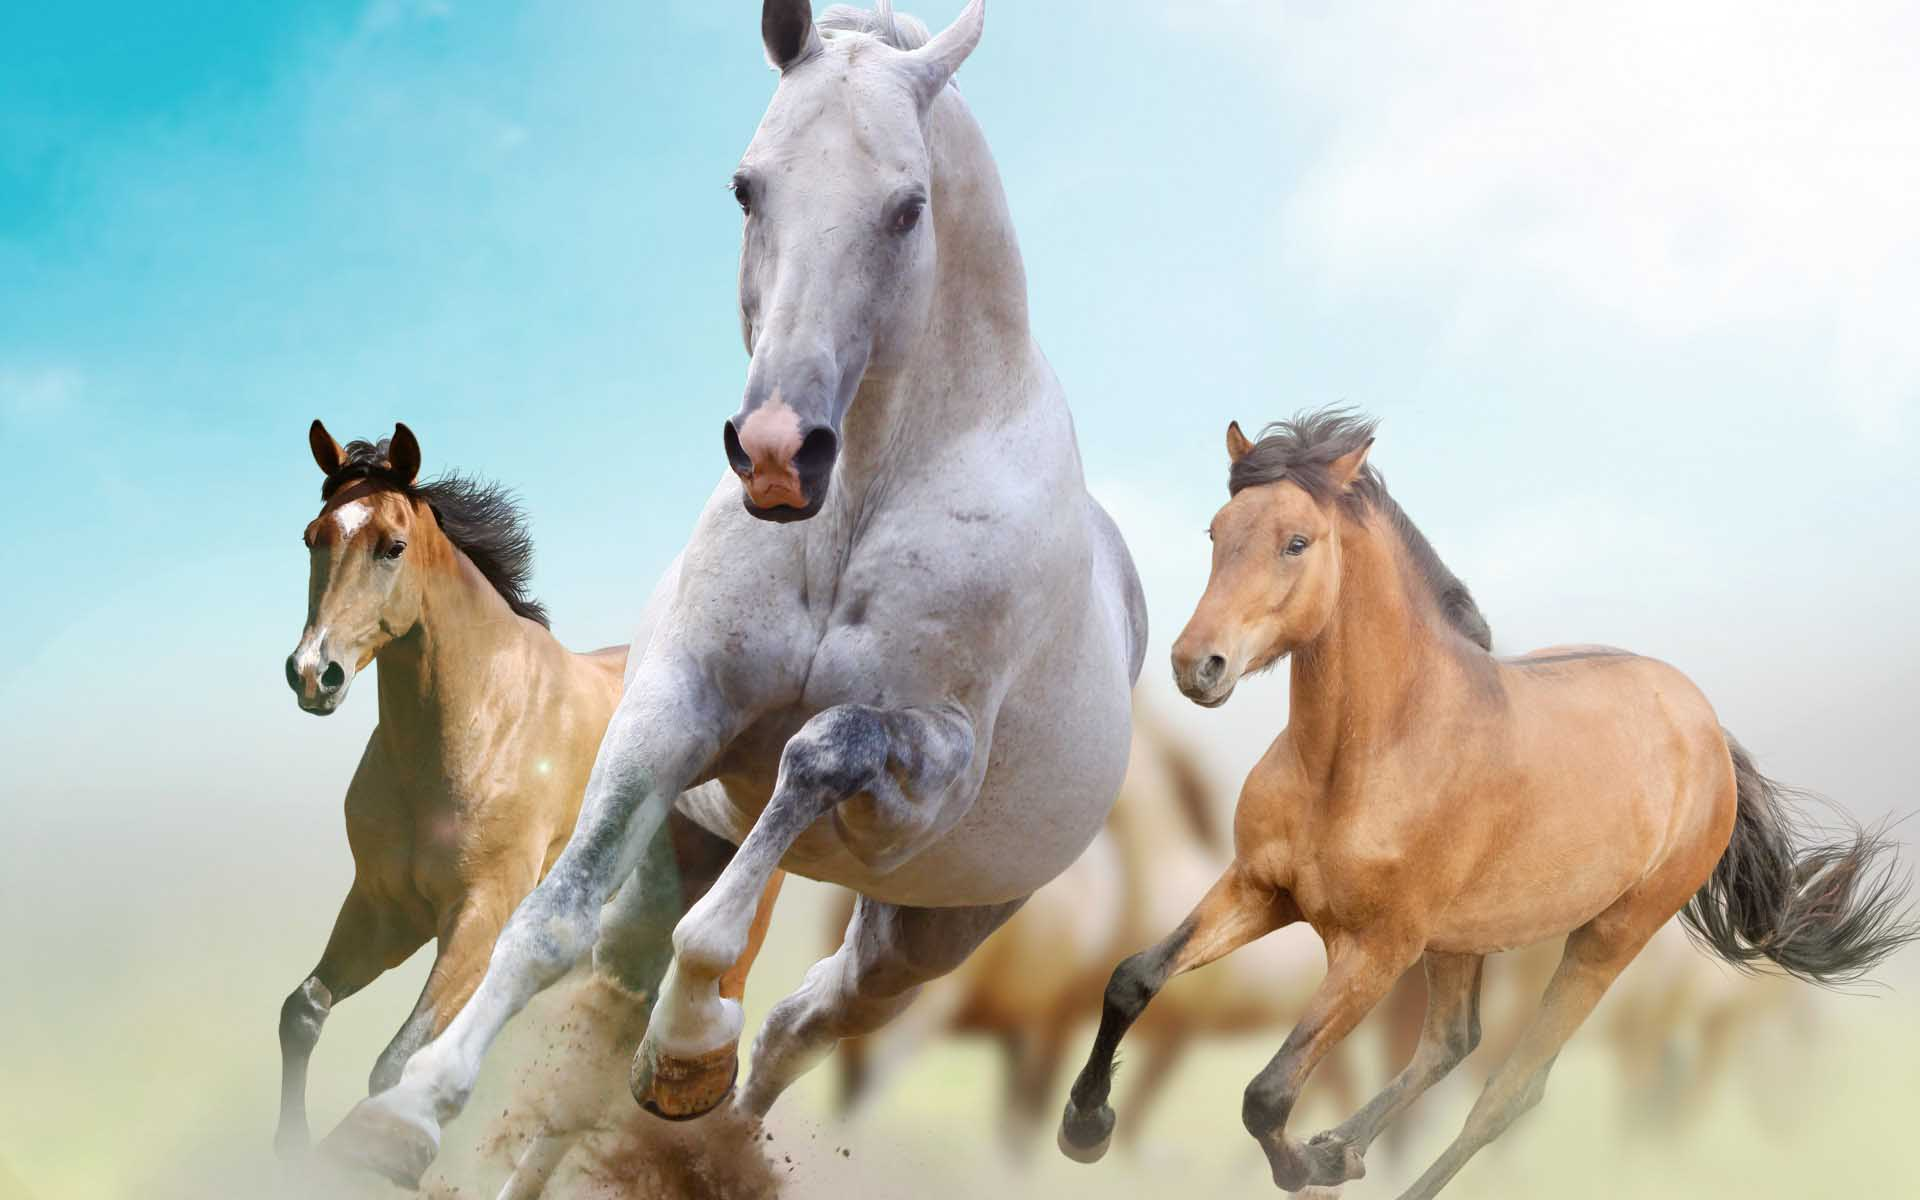 wild horses racing wallpaper - photo #2